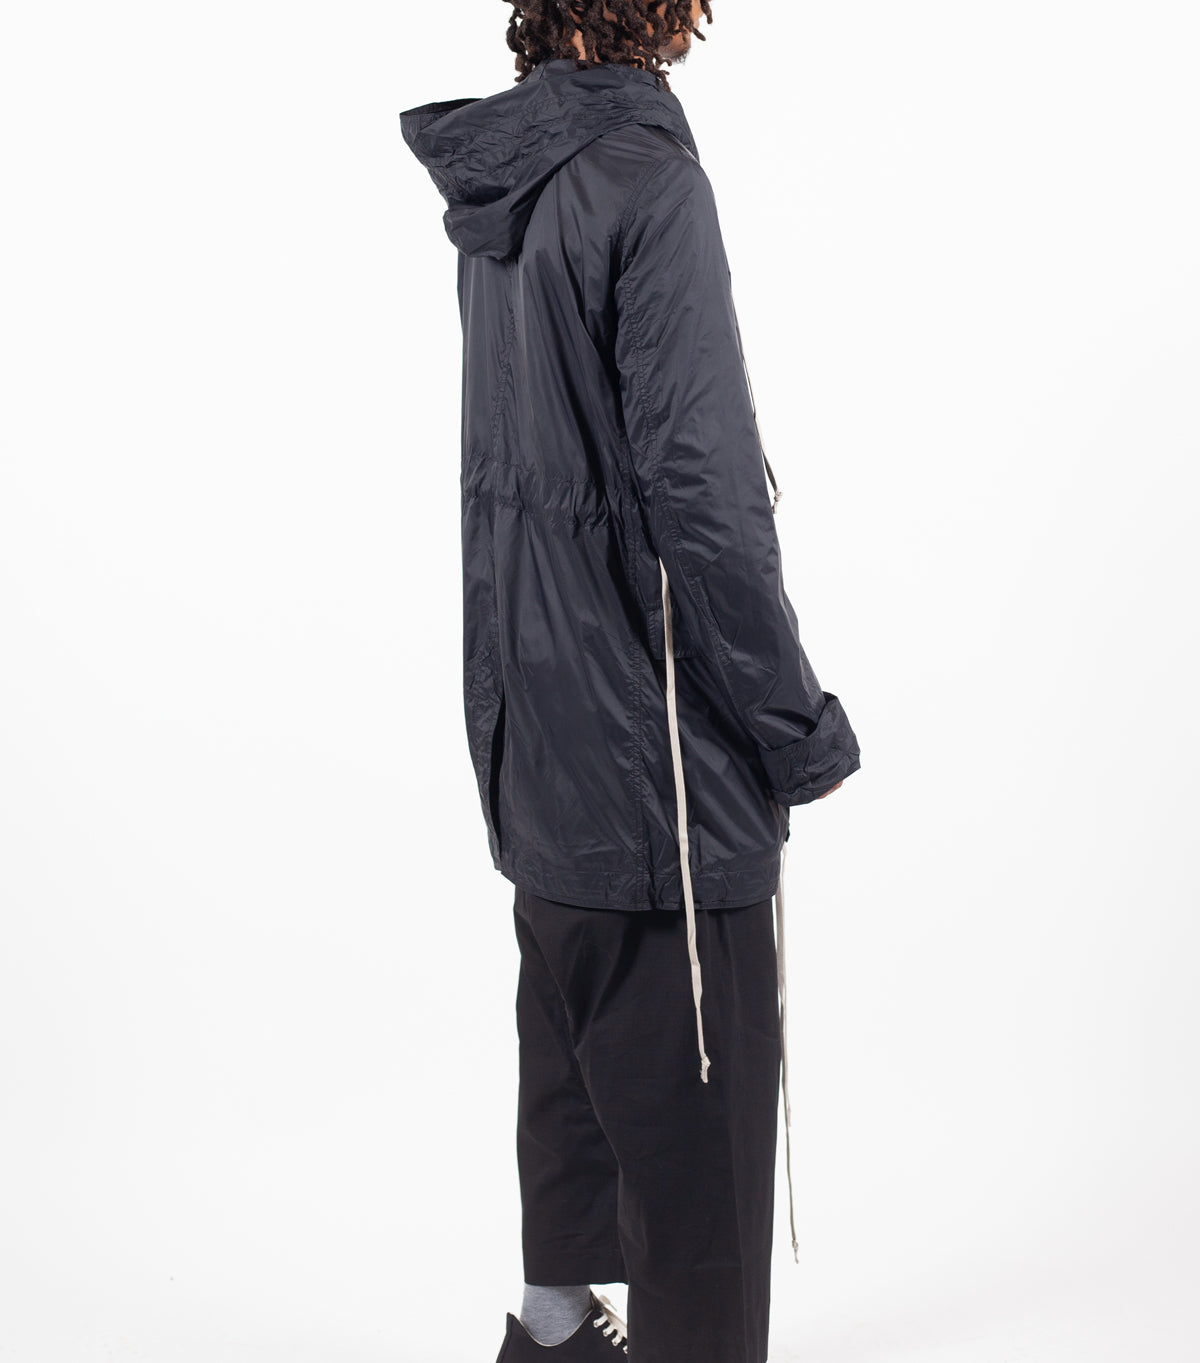 RICK OWENS DRKSHDW | RICK OWENS DRKSHDW SHORT FISHTAIL PARKA BLACK | SOMEWHERE®